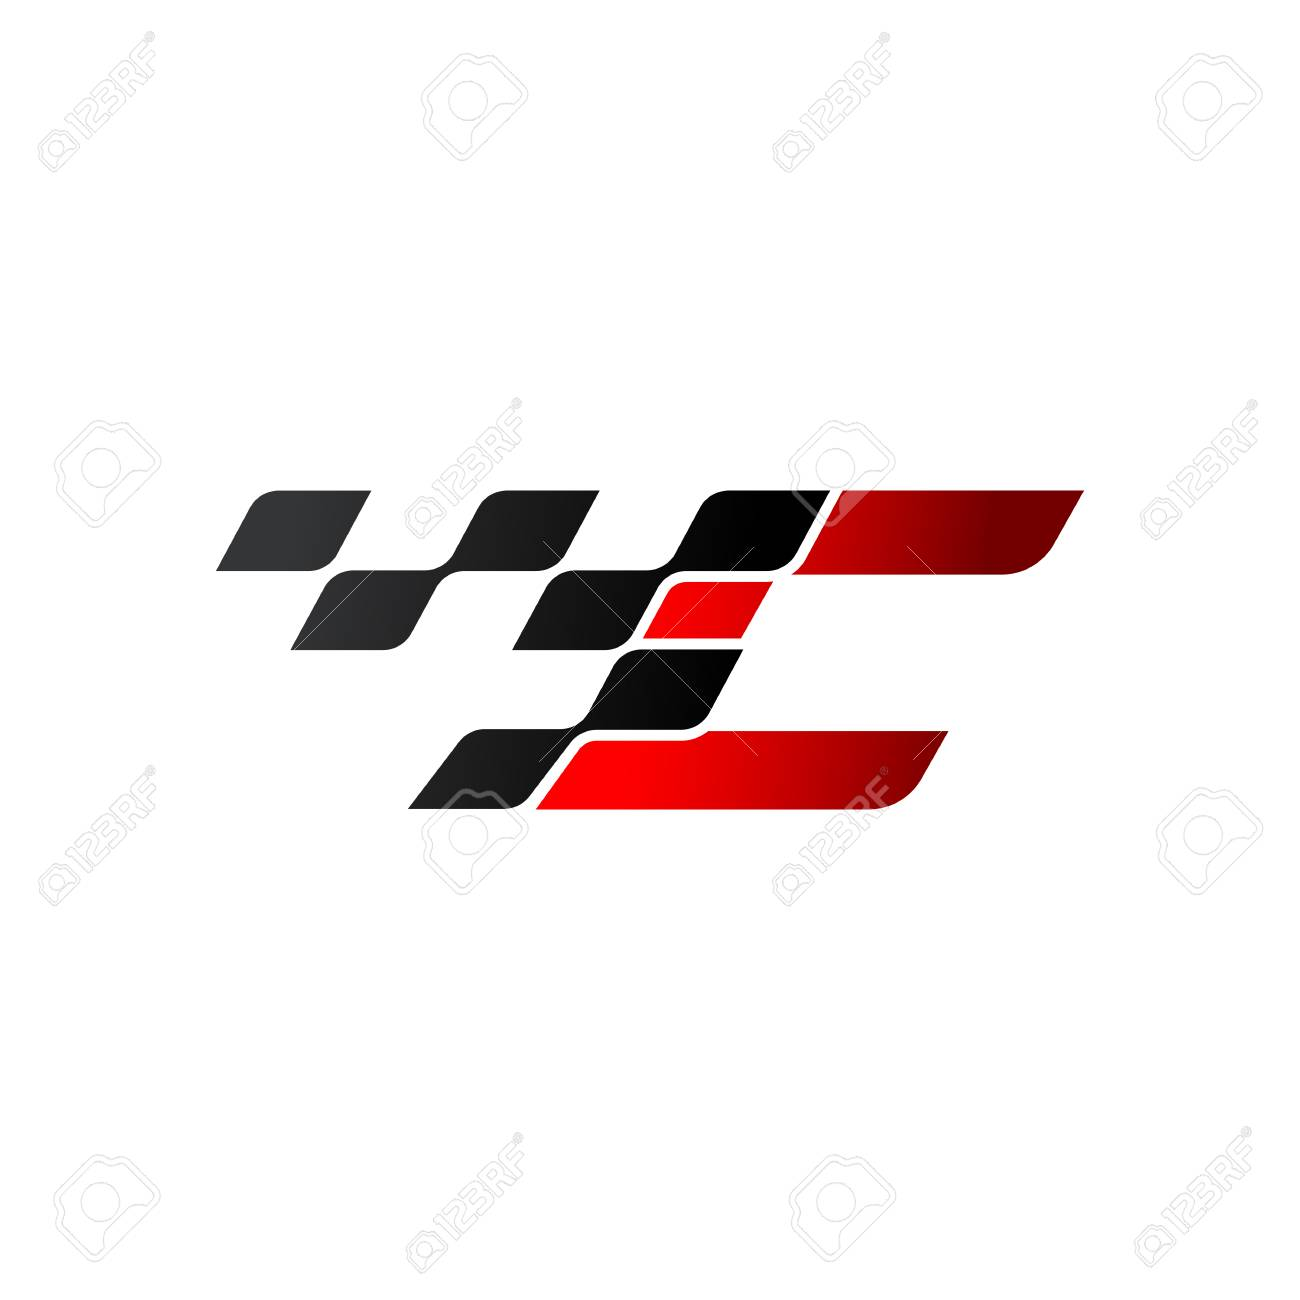 Letter C with racing flag logo - 105838579